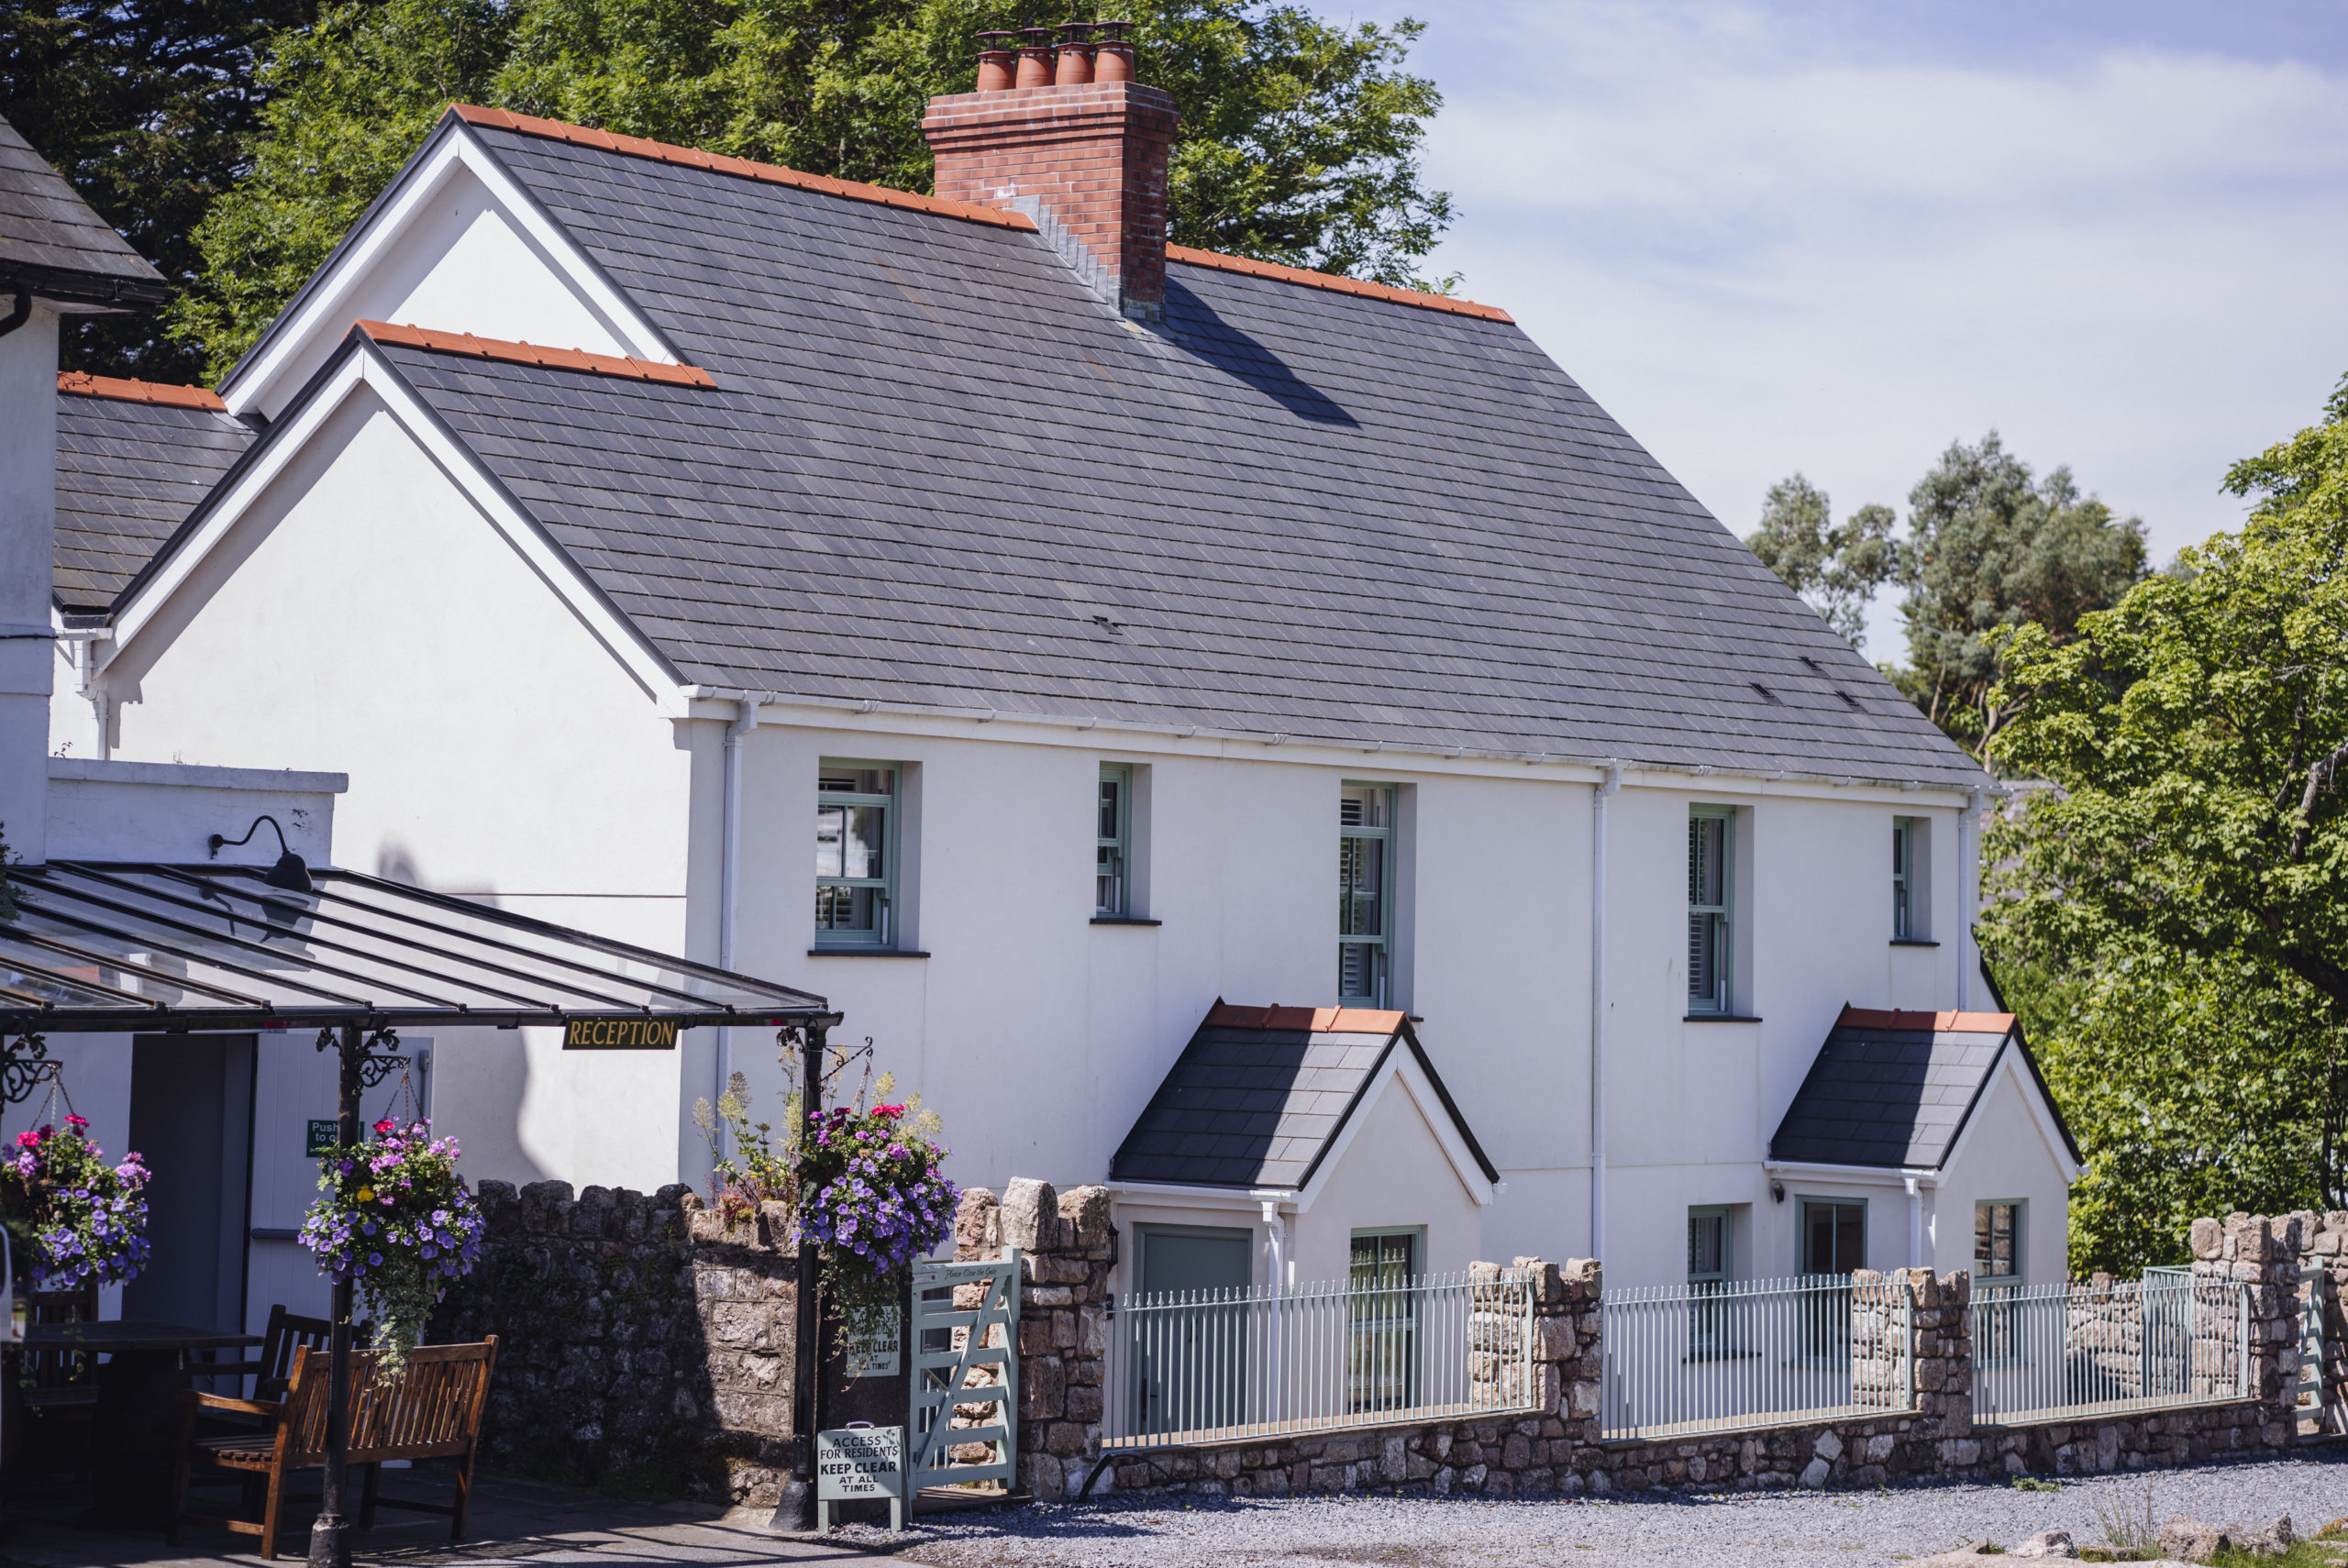 self catering cottages on Gower